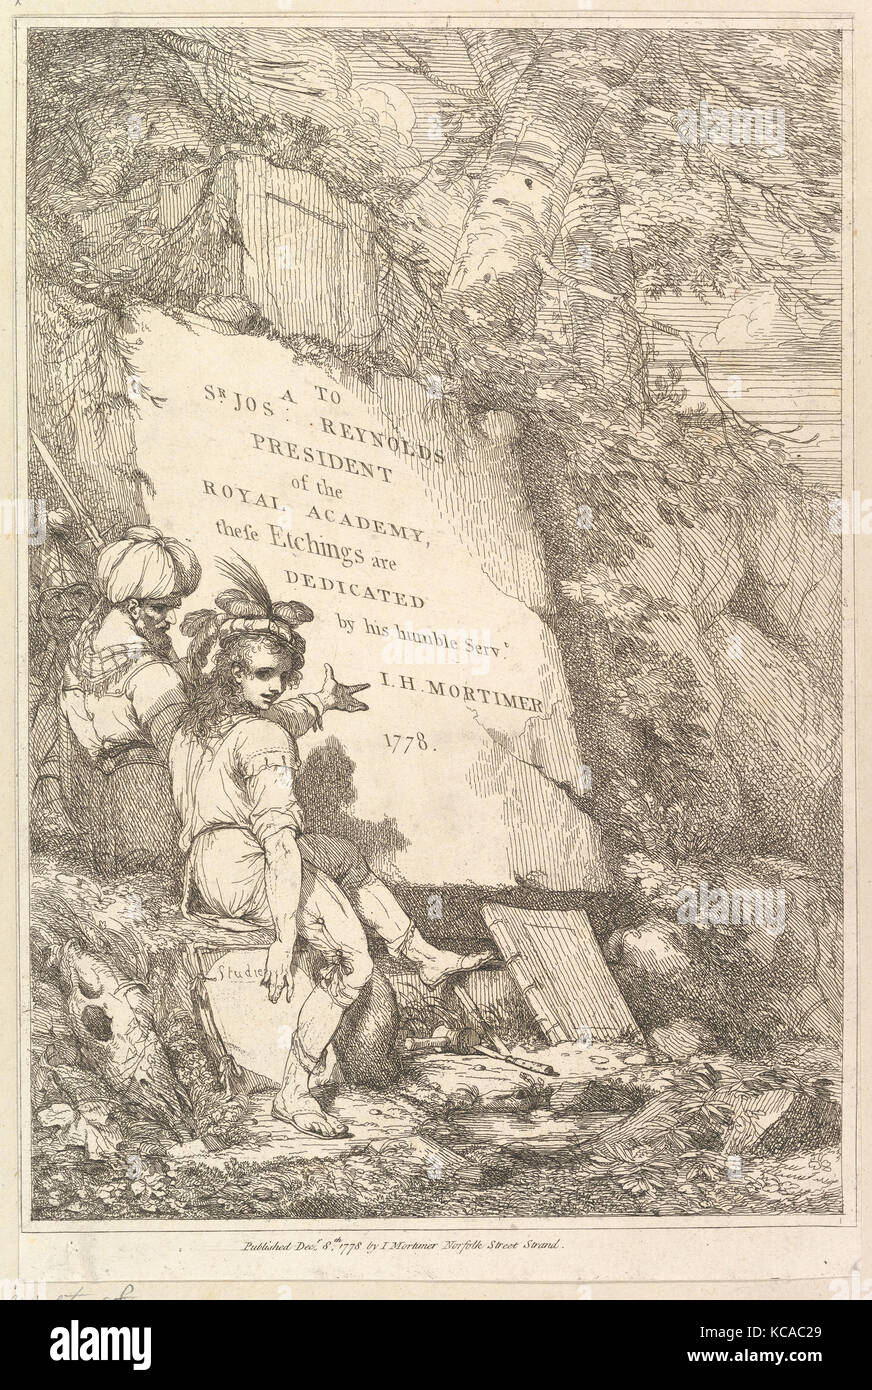 Frontispiece (Fifteen Etchings Dedicated to Sir Joshua Reynolds), 1778 - Stock Image